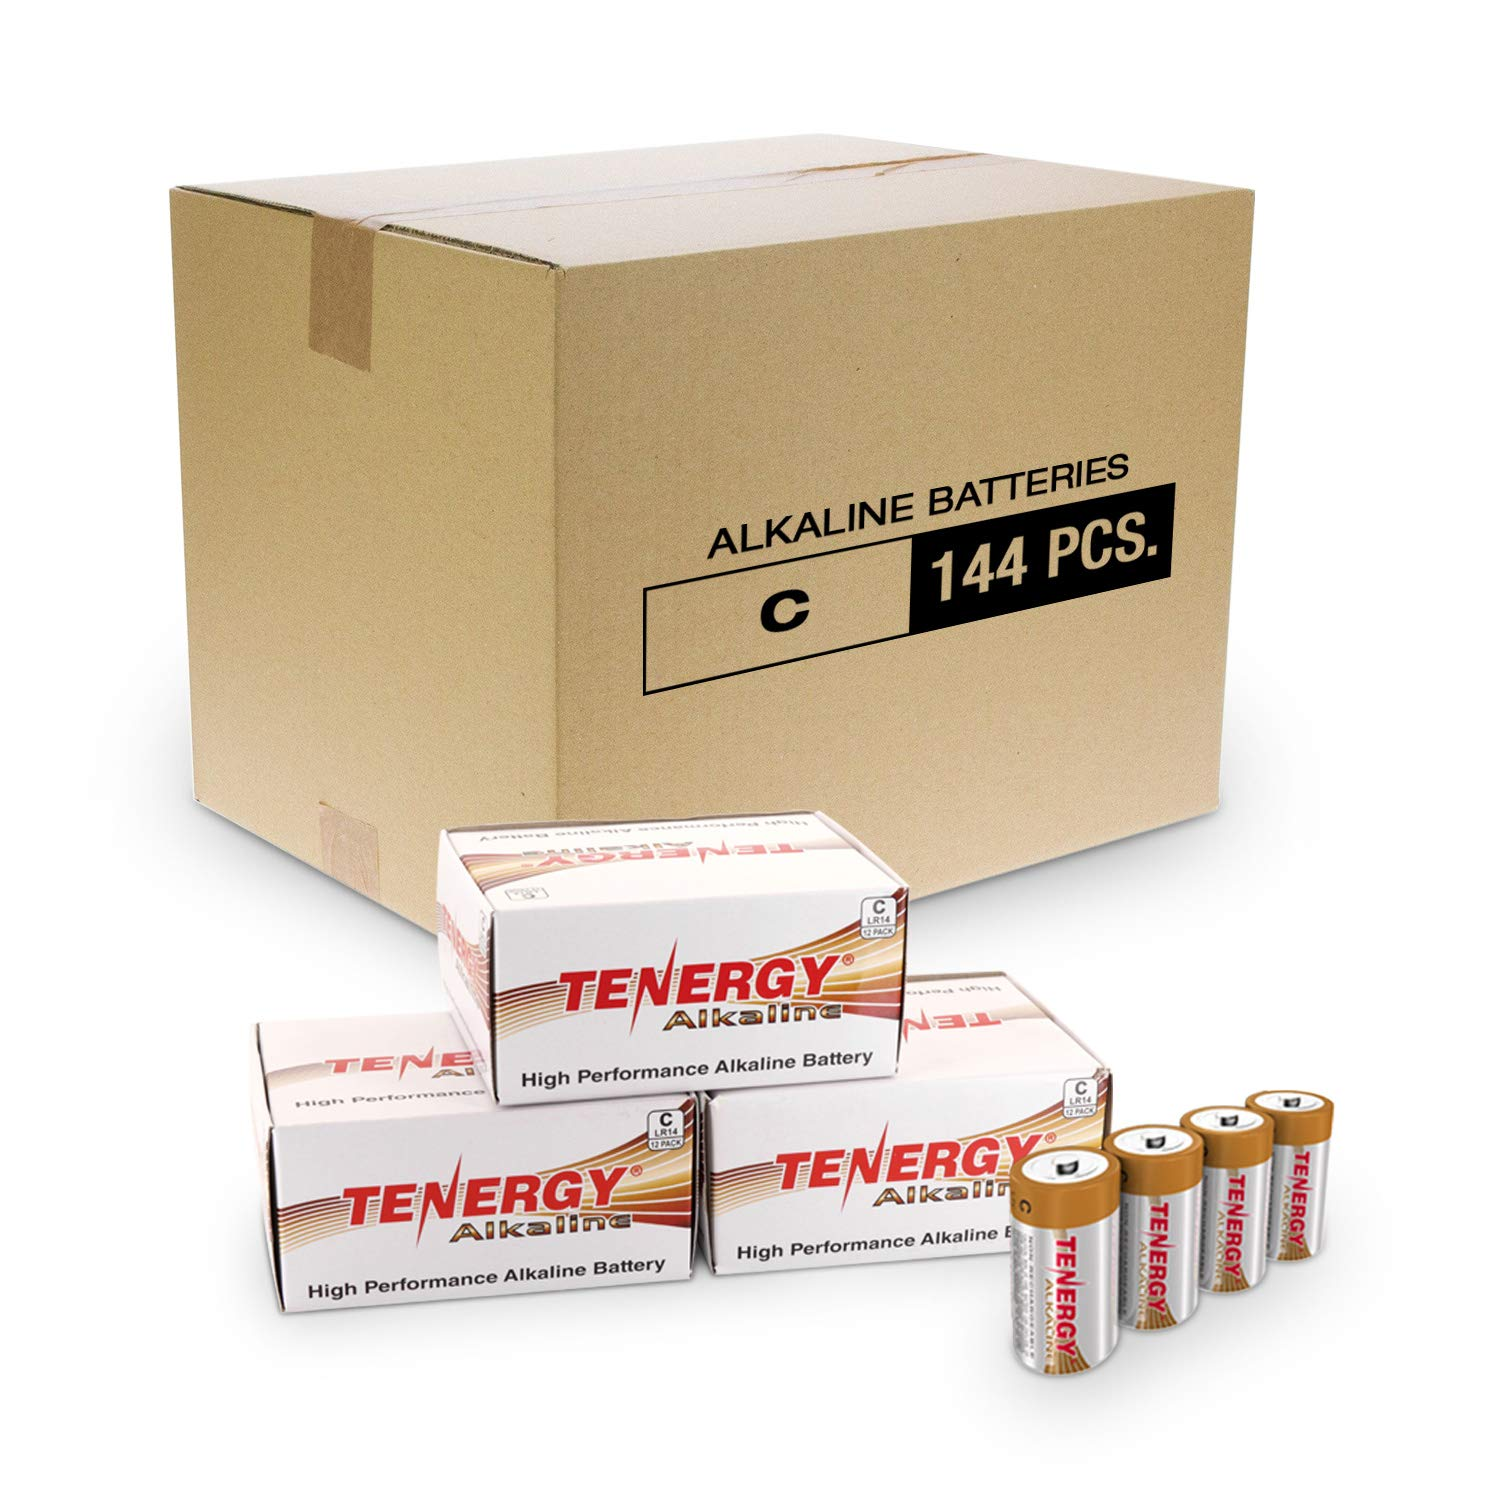 Tenergy 1.5V C Alkaline LR14 Battery, High Performance C Non-Rechargeable Batteries for Clocks, Remotes, Toys & Electronic Devices, Replacement C Cell Batteries,144-Pack…